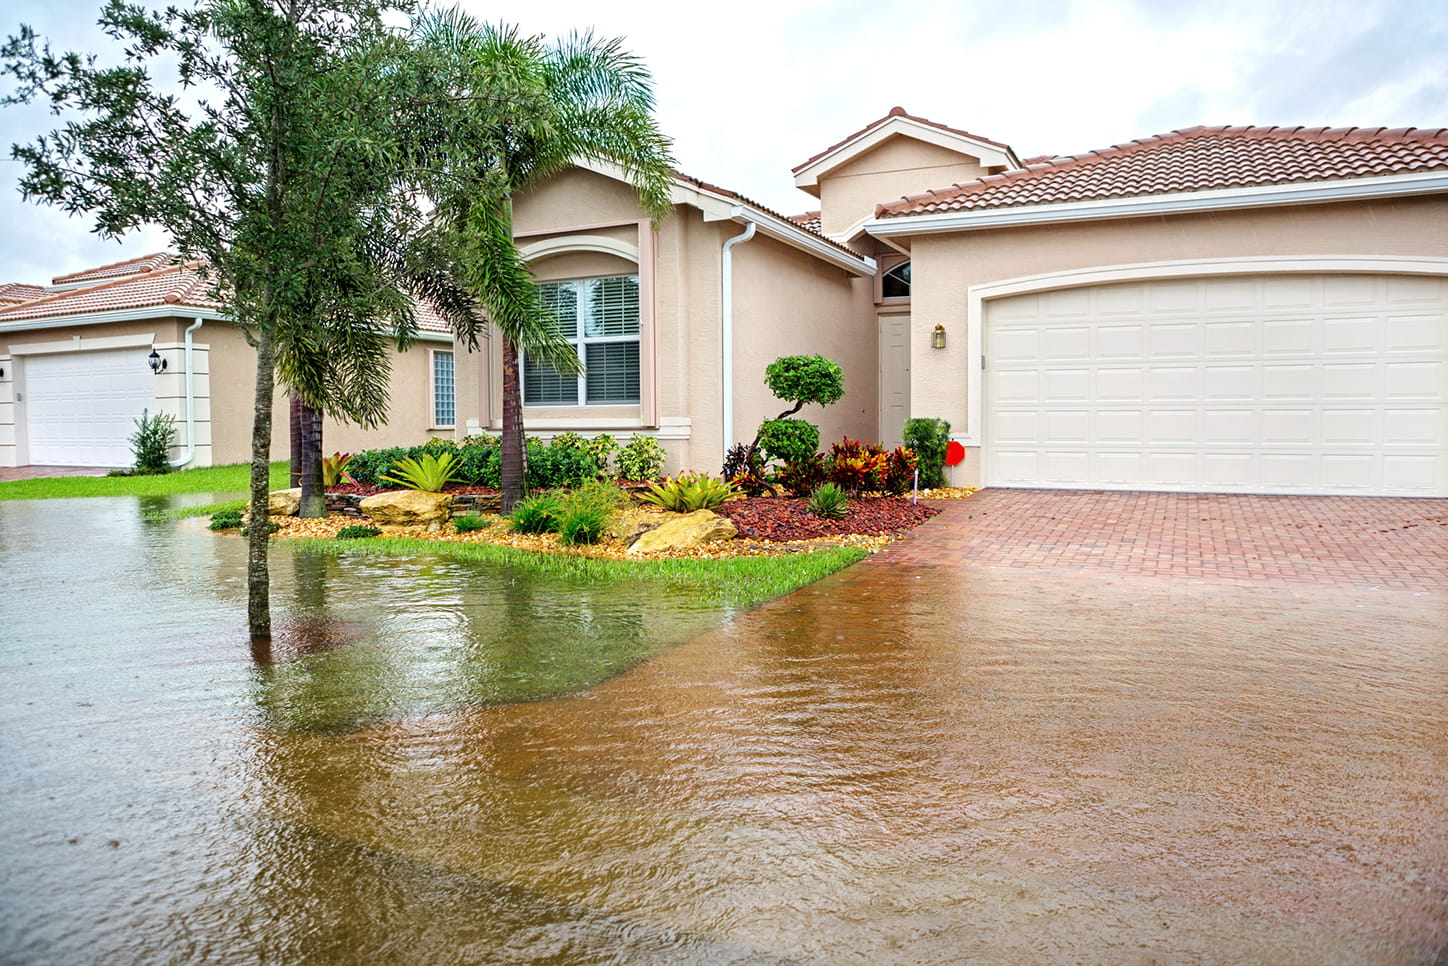 House being flooded from a hurricane